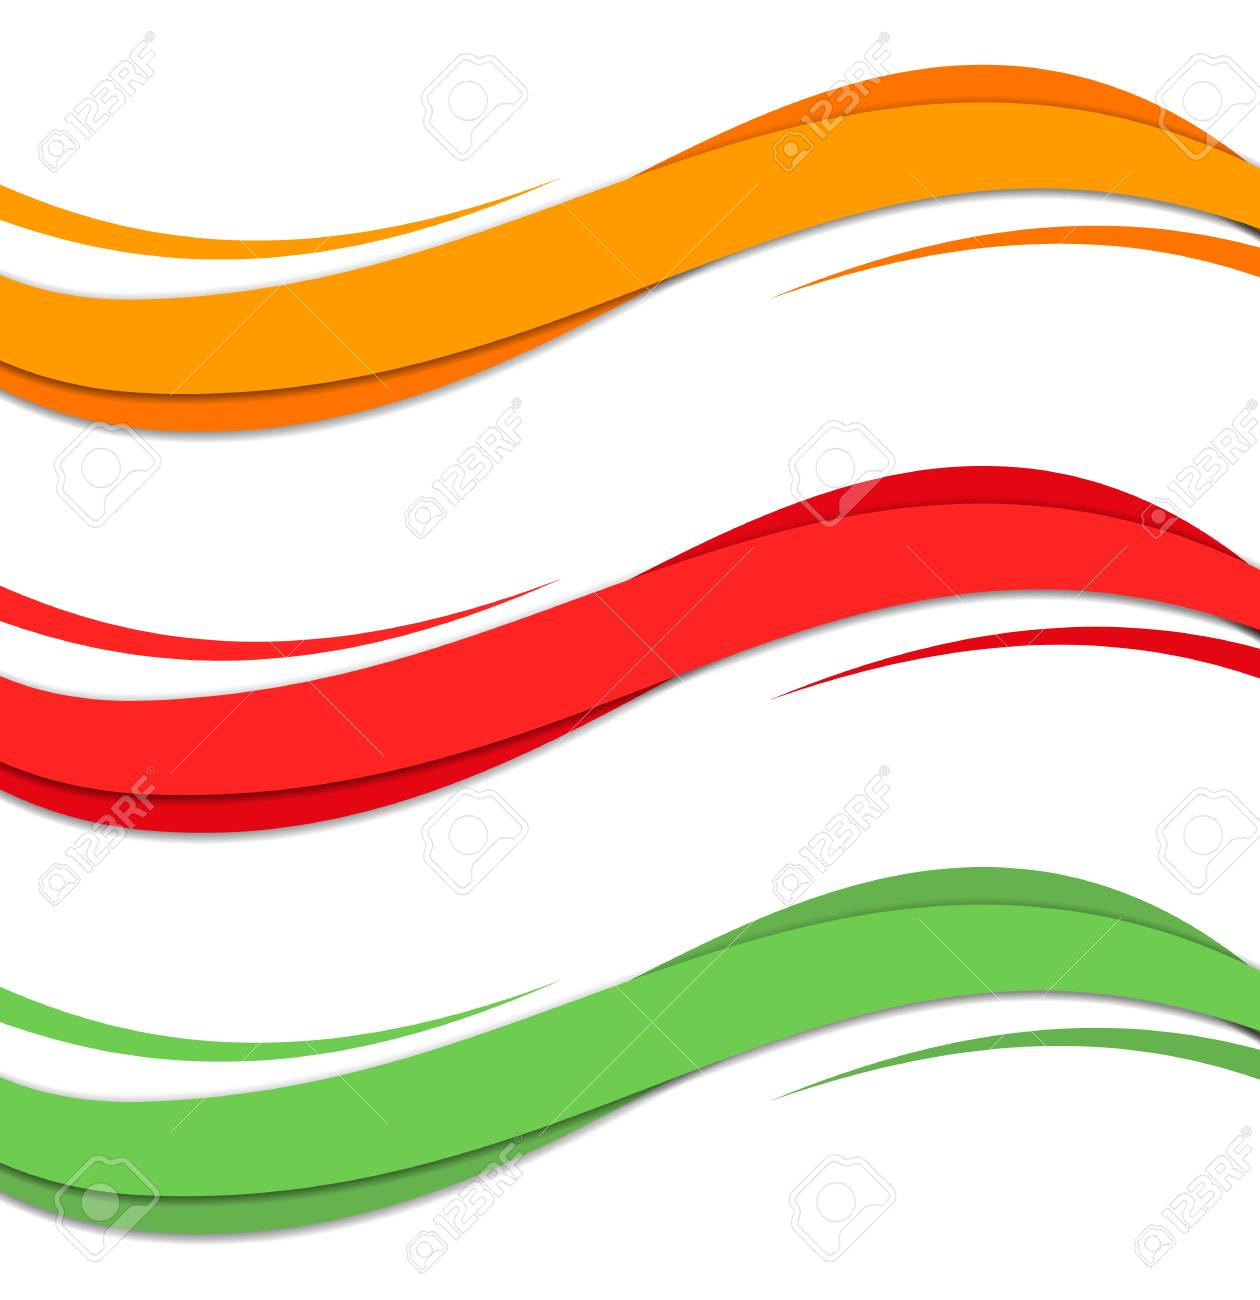 Abstract color wave design element. Smooth dynamic soft style on light background. Vector illustration - 125462282